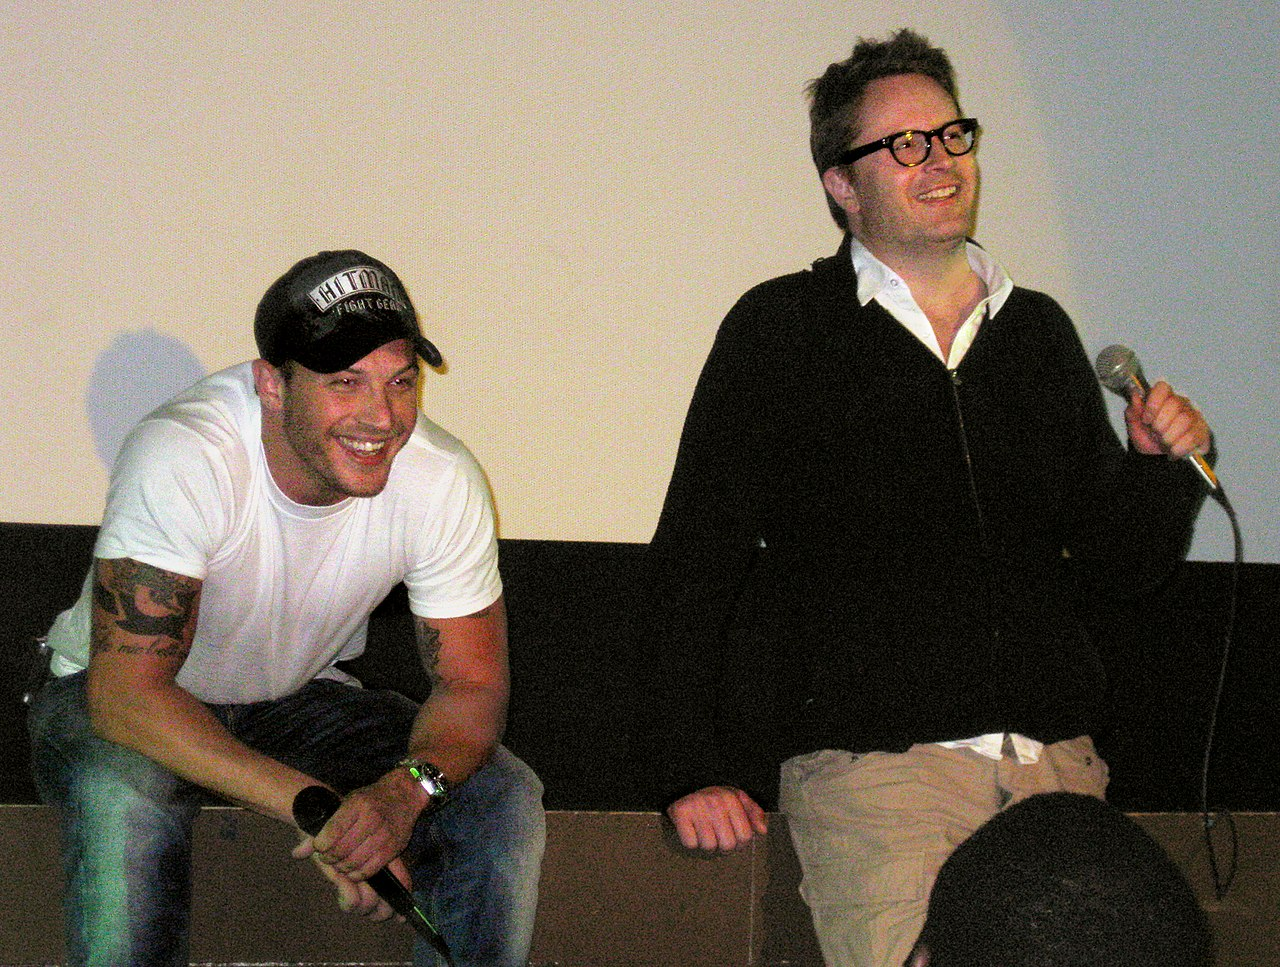 File:Tom Hardy & Nicolas Winding Refn.jpg - Wikimedia Commons